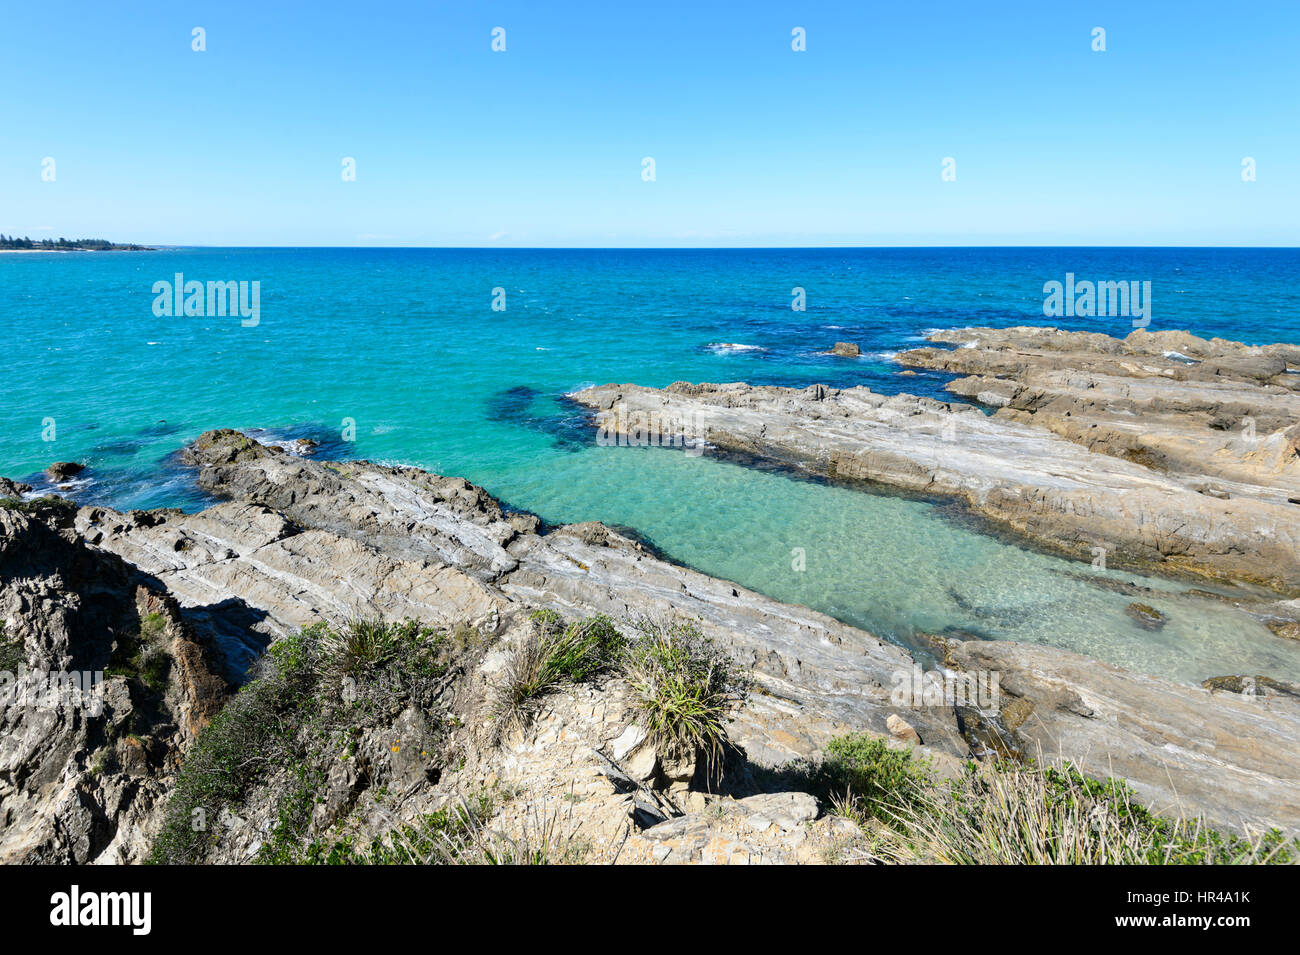 Scenic coastline with turquoise water at Potato Point, New South Wales, Australia - Stock Image